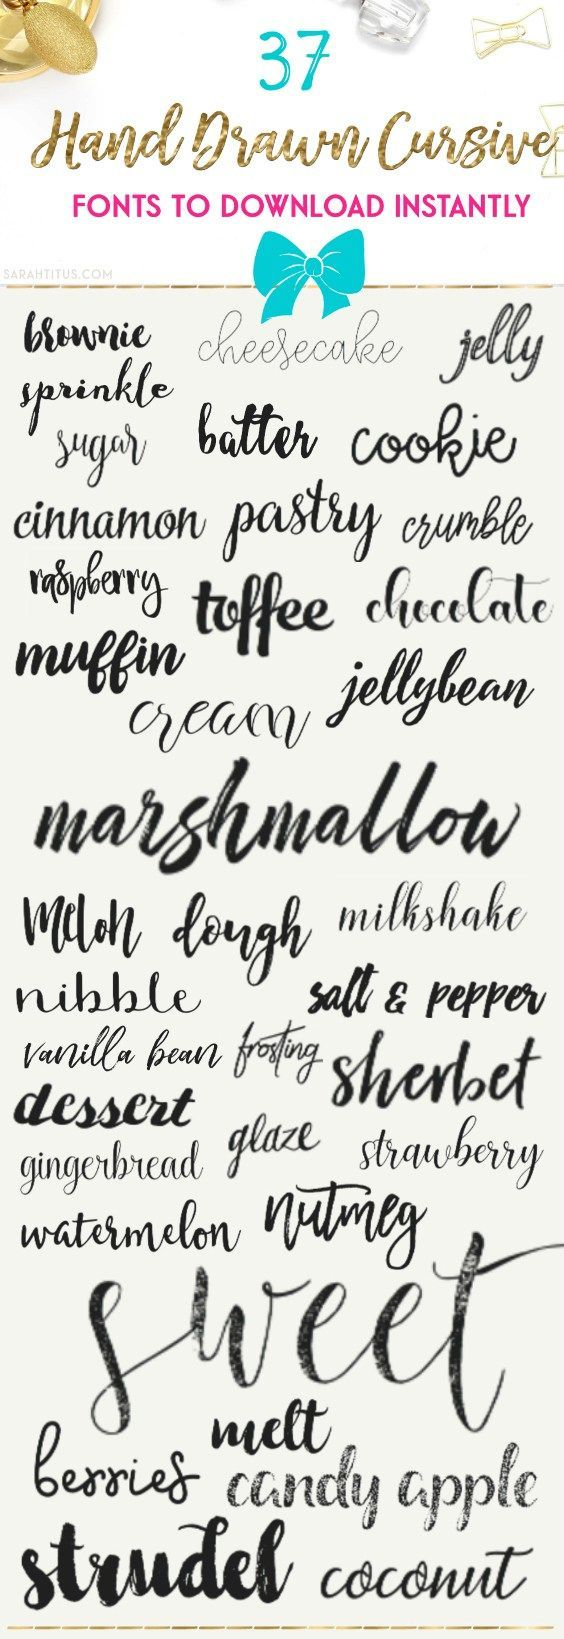 37 Hand Drawn Cursive Fonts to Download Instantly | Cricut